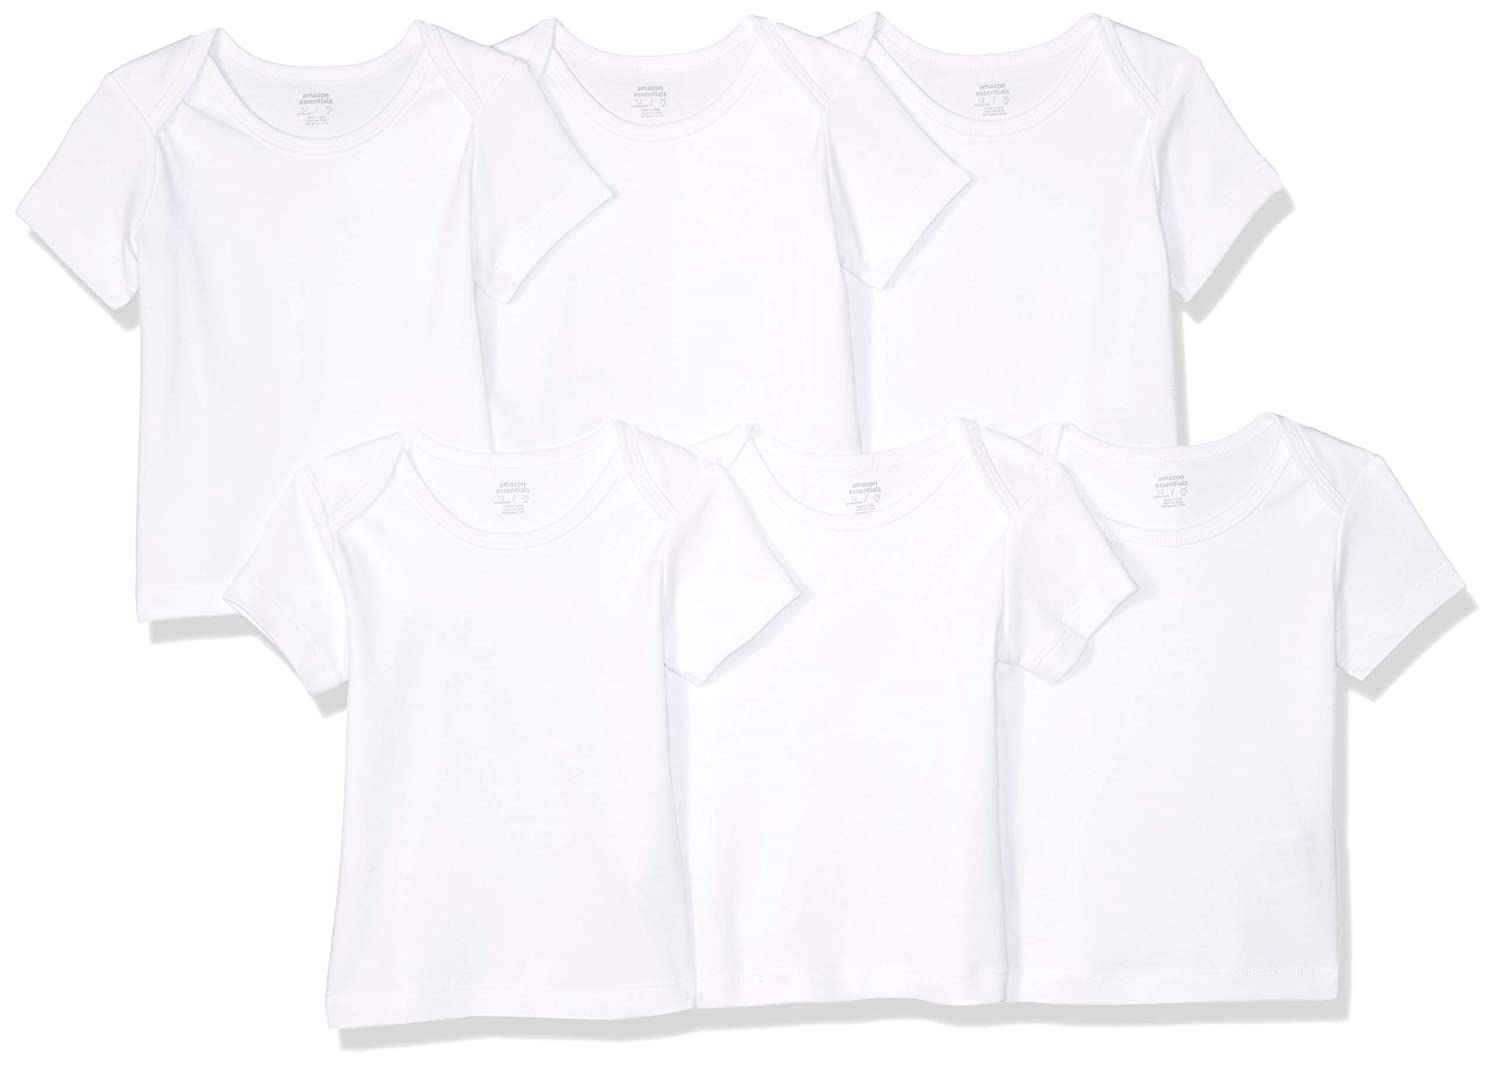 Amazon Essentials Boys' 6-Pack Lap-Shoulder Tee